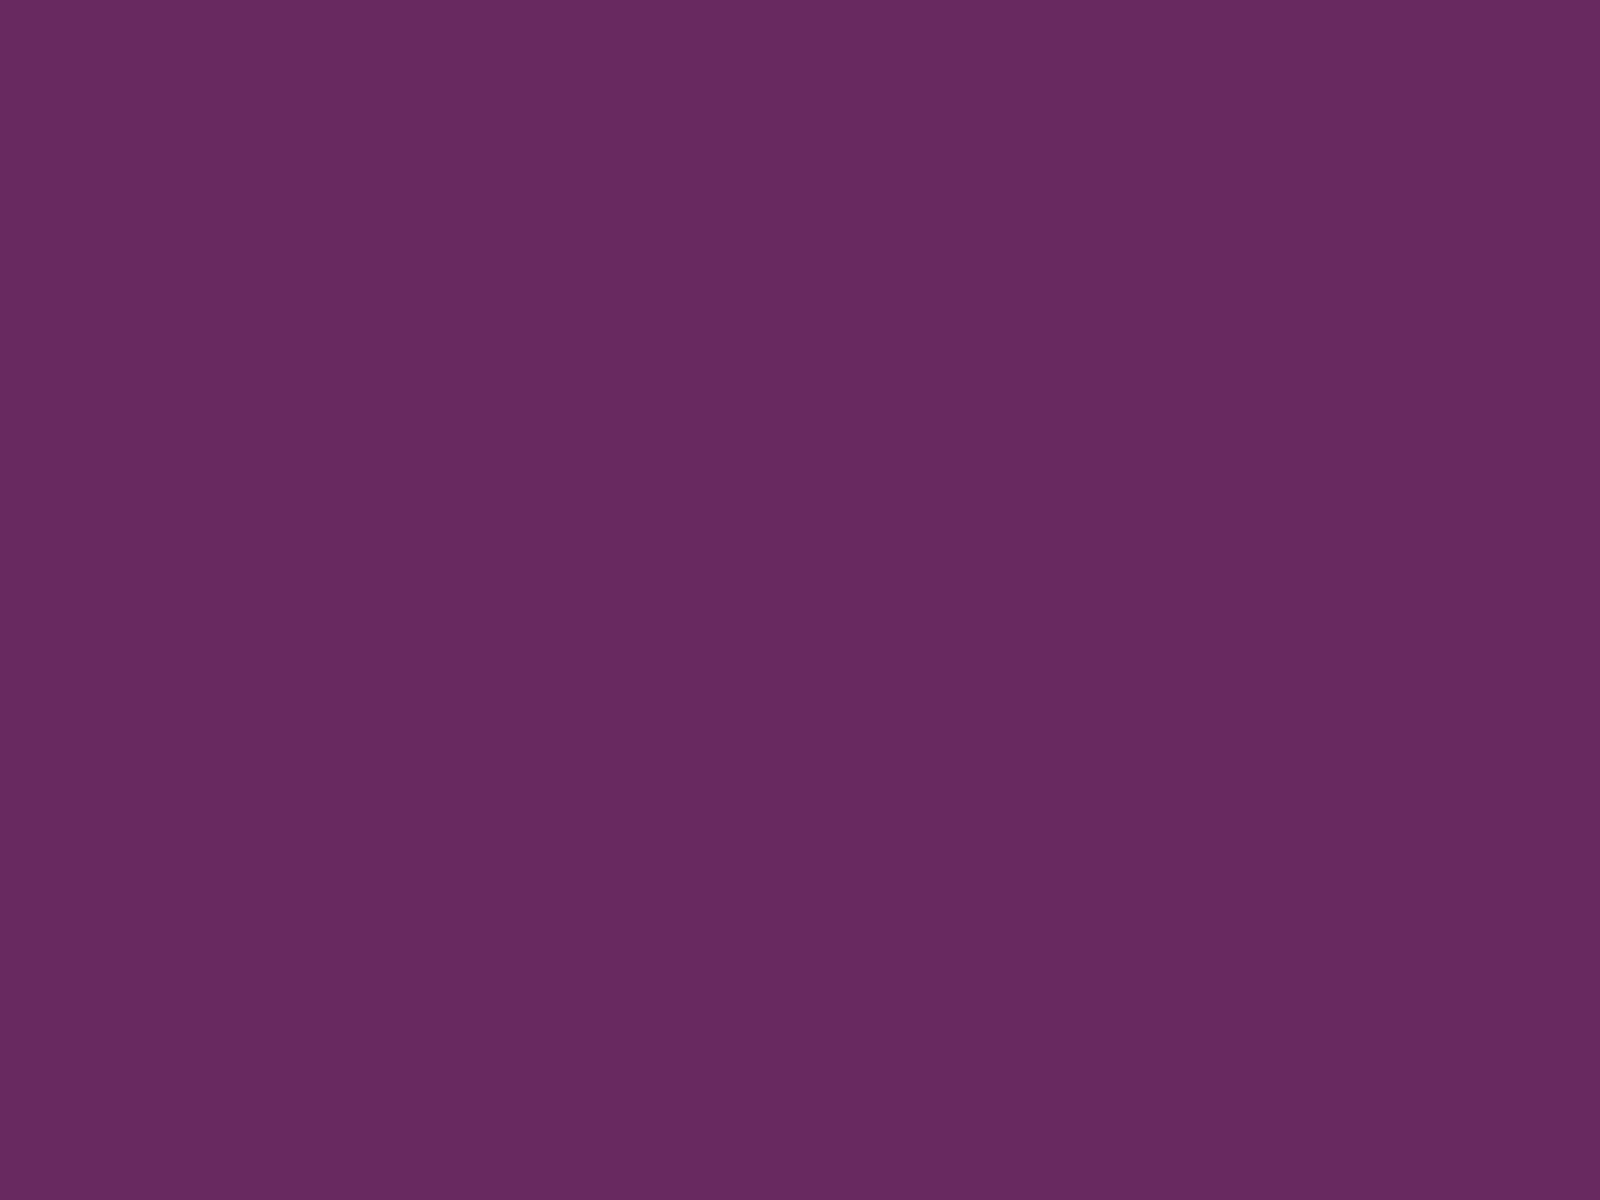 1600x1200 Palatinate Purple Solid Color Background